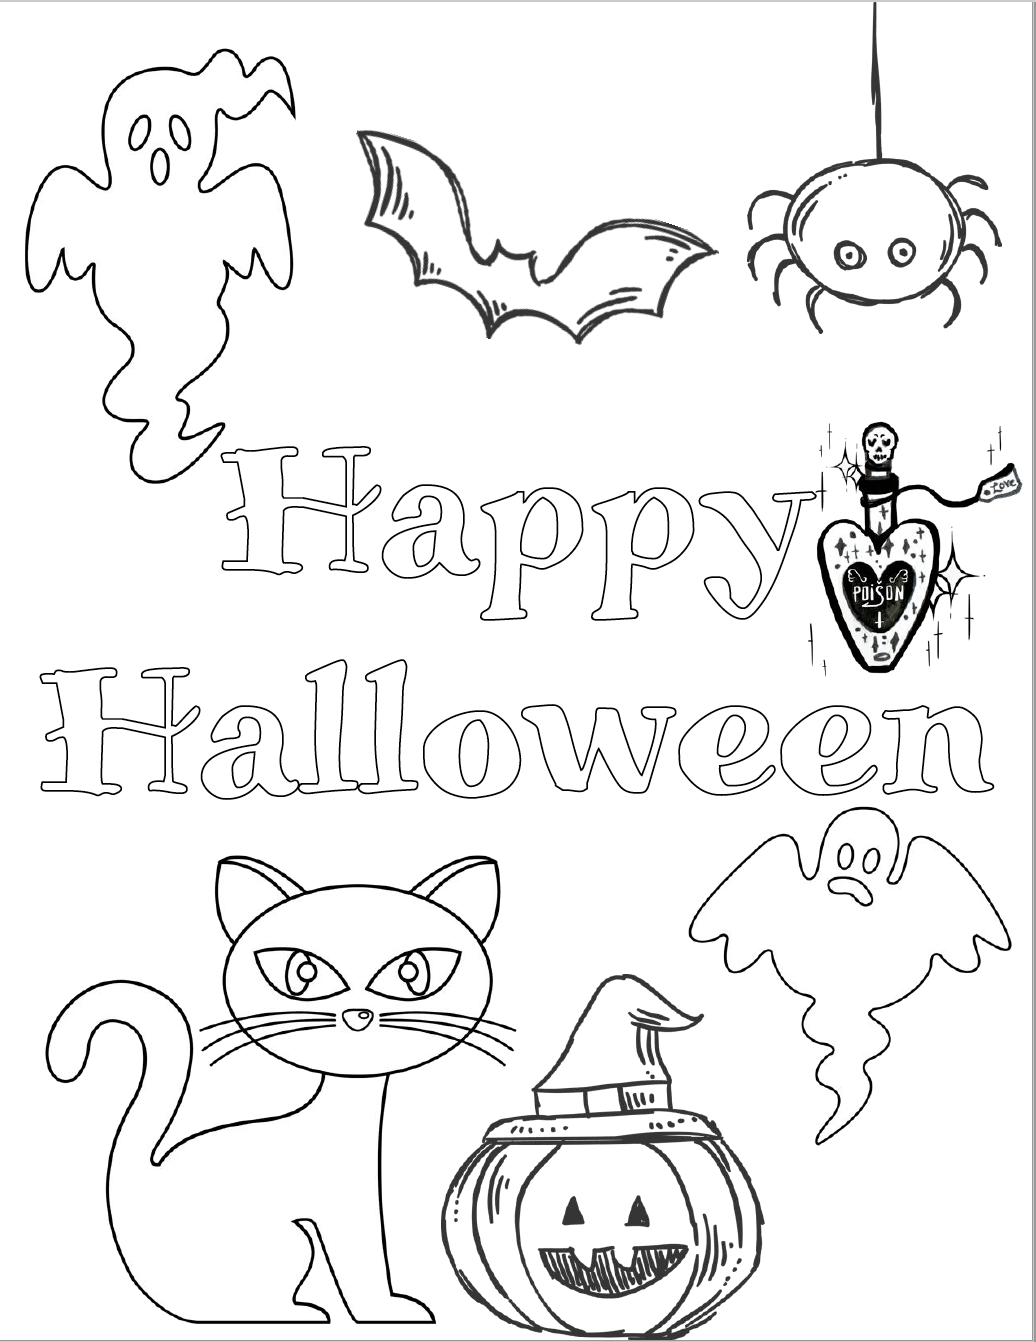 Halloween Cat Coloring Pages - GetColoringPages.com | 1342x1036